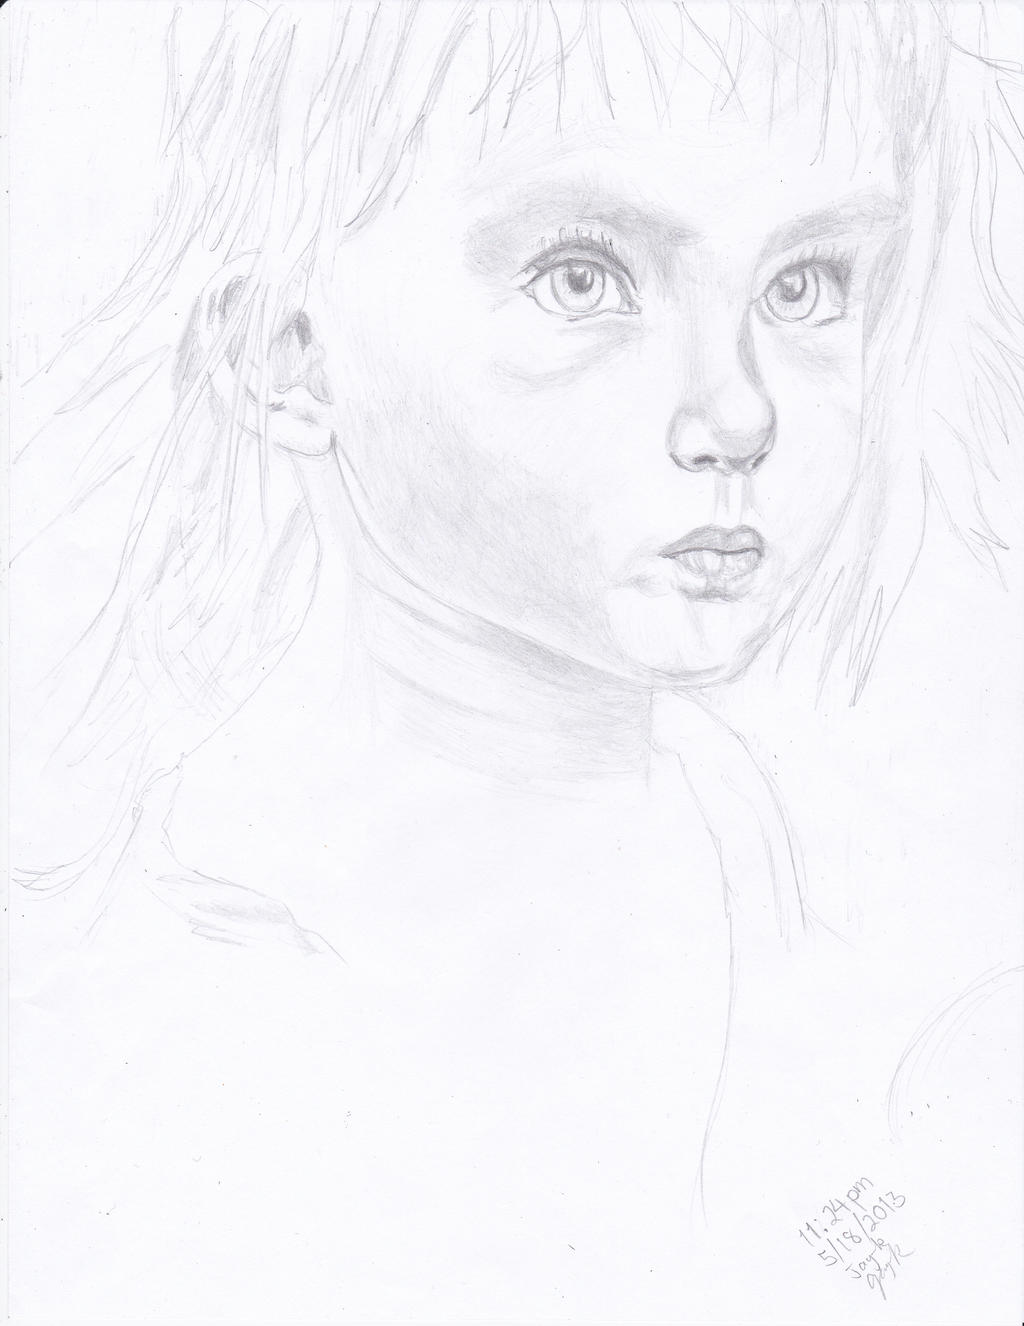 Cute Little Girl's Face (Pencil) by AplG7